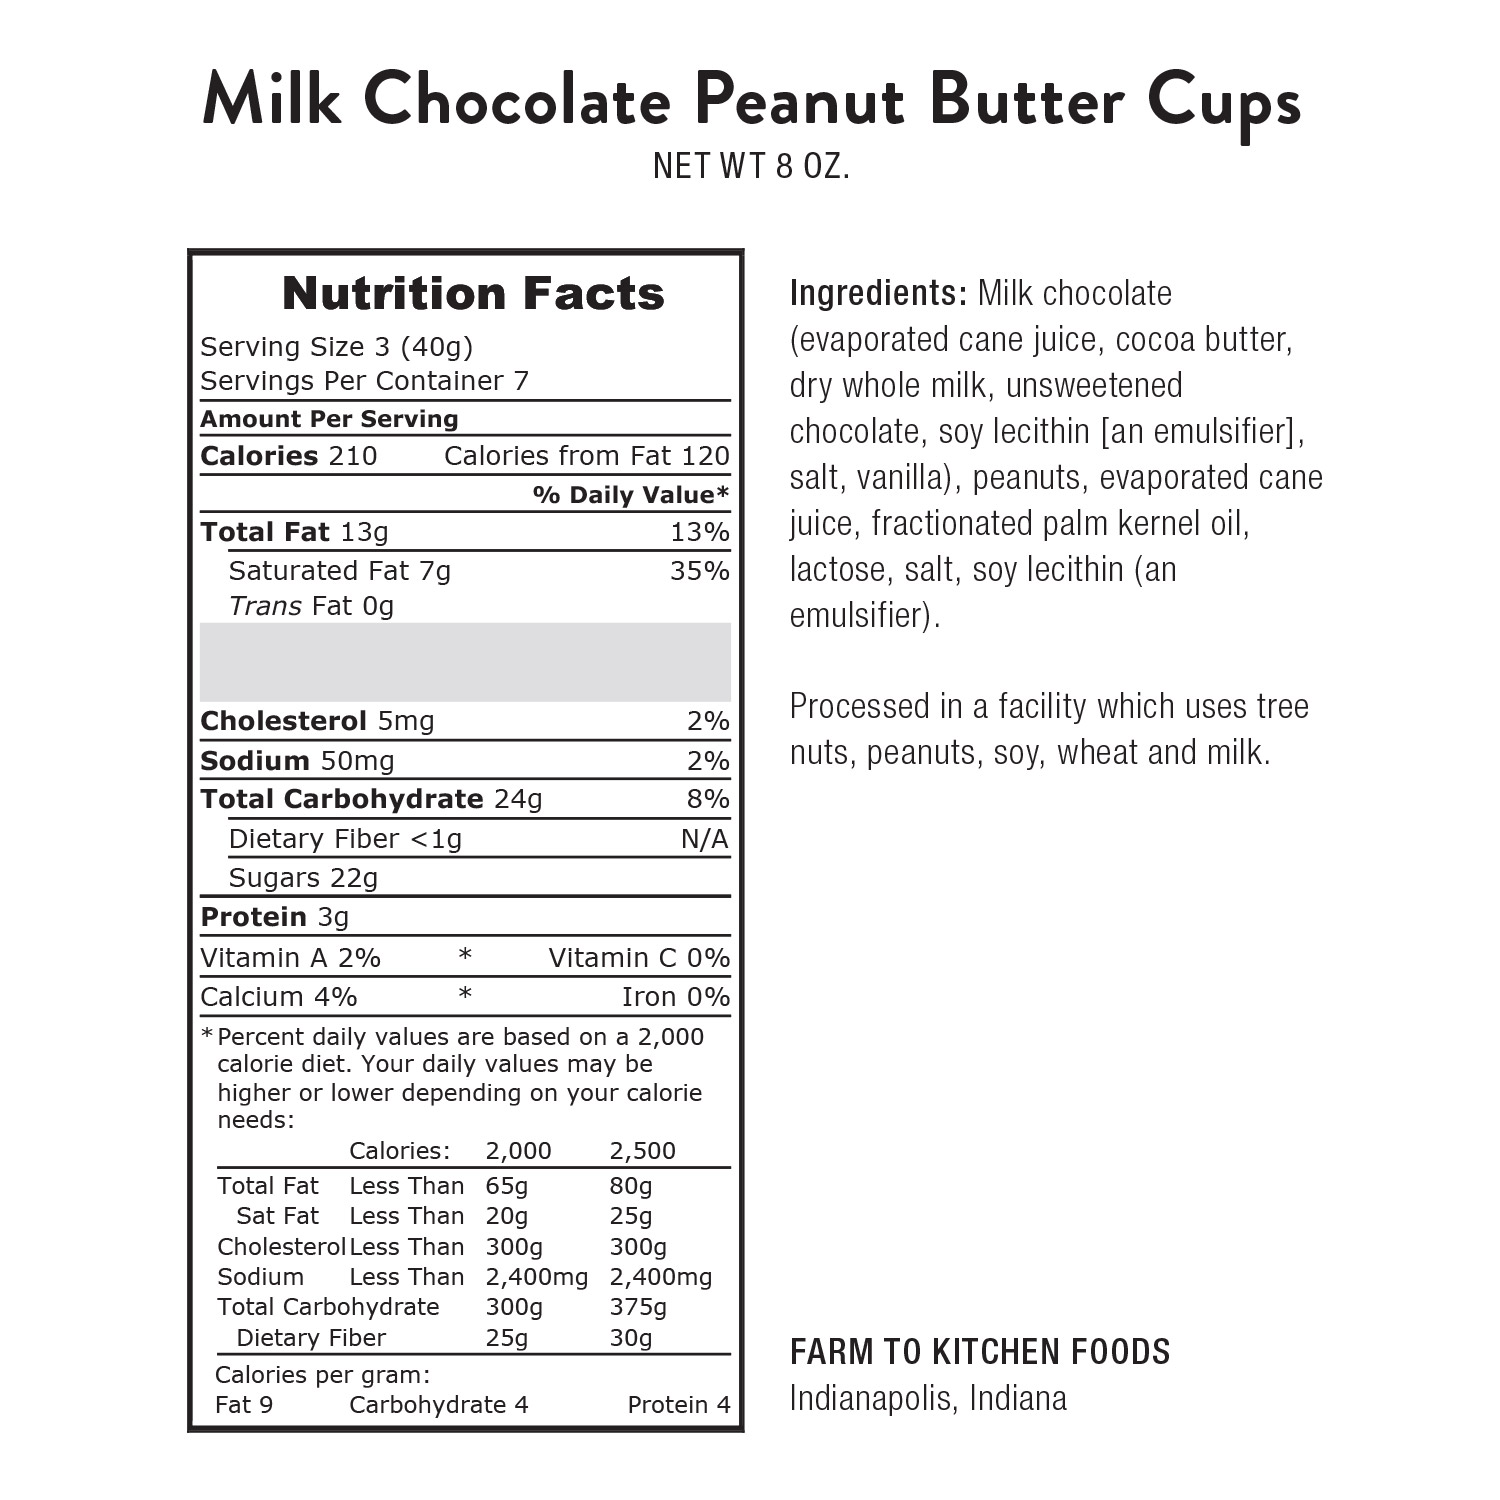 Milk Chocolate Peanut Butter Cups